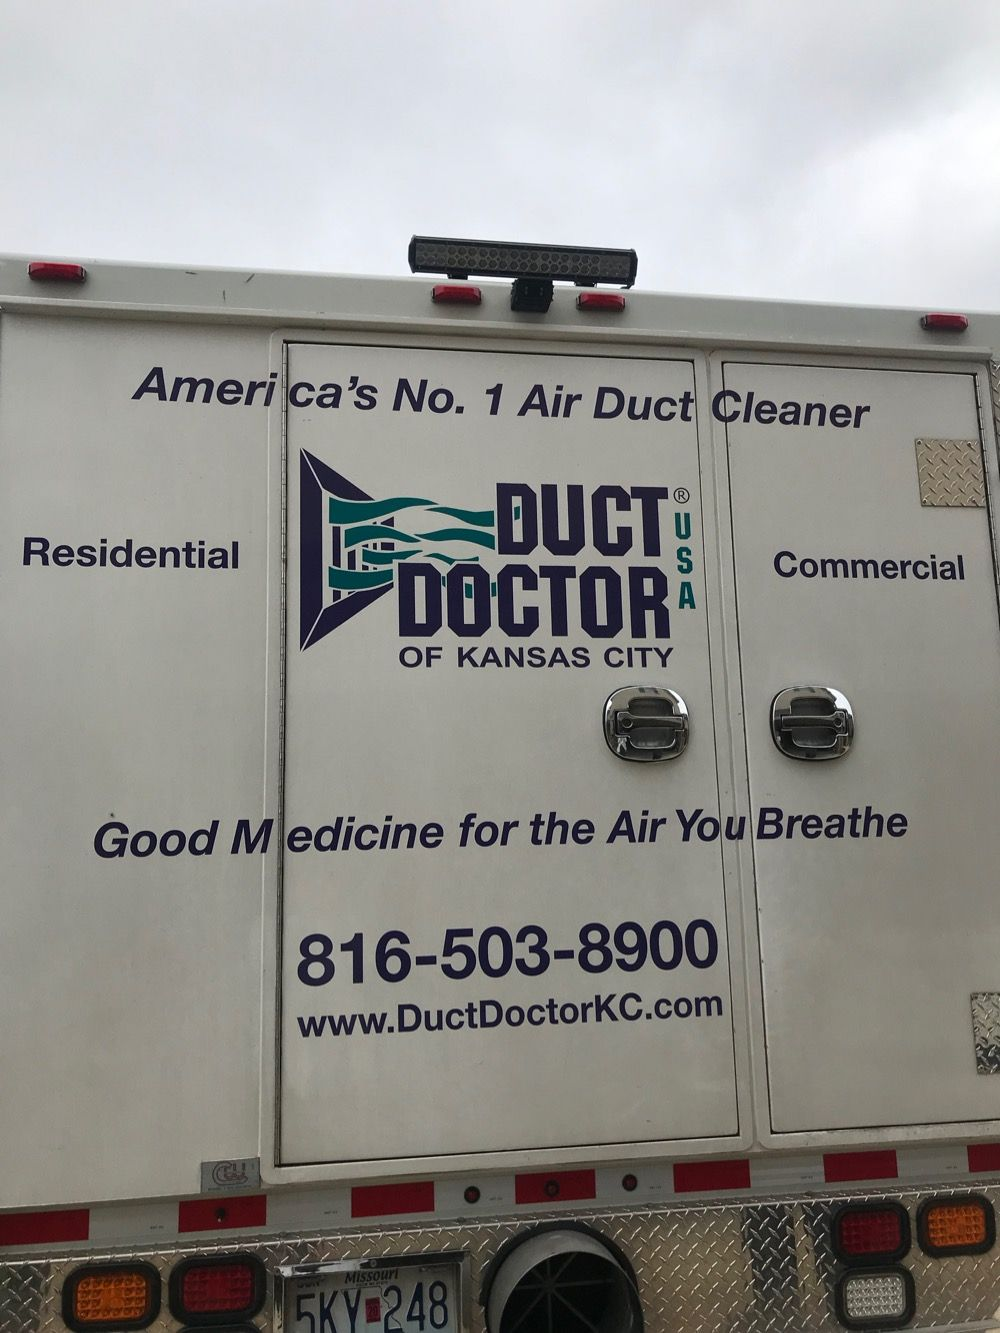 Is Air Duct Cleaning Worth It?, Should I get my ducts